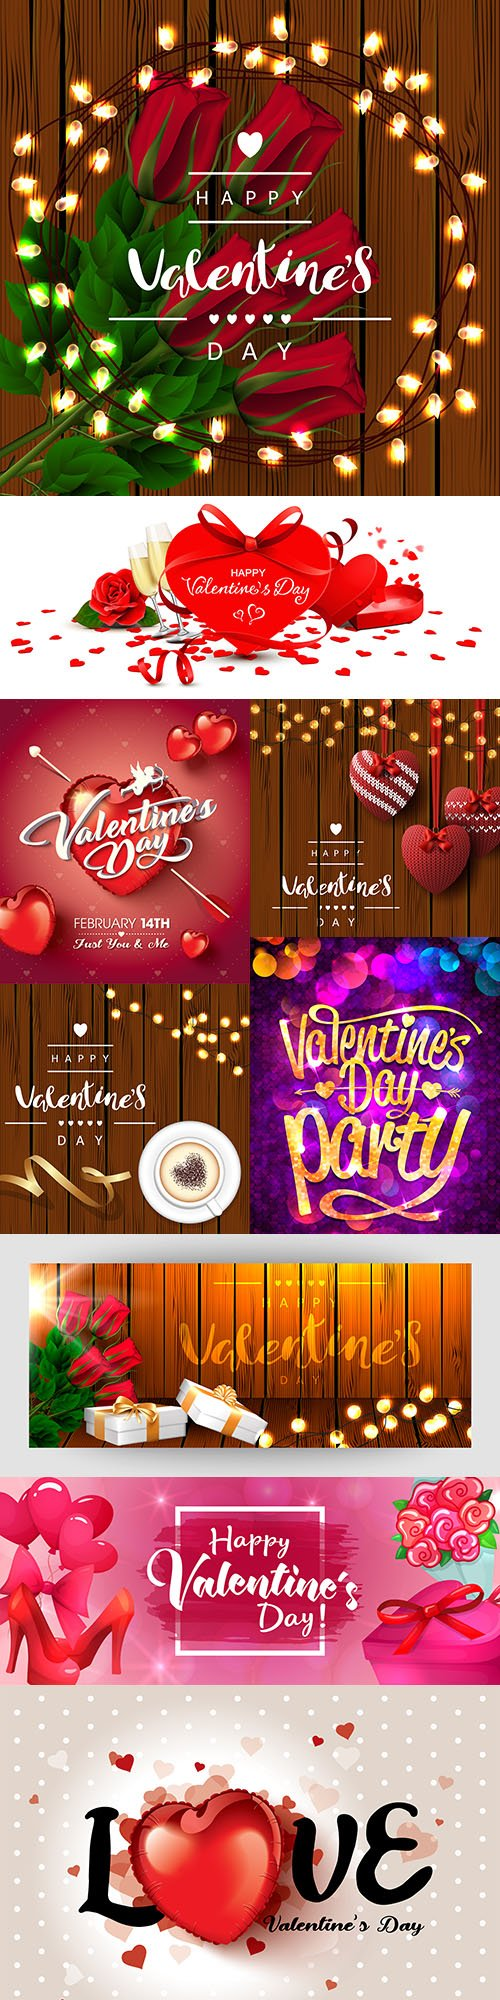 Happy Valentine's Day romantic decorative illustrations 27